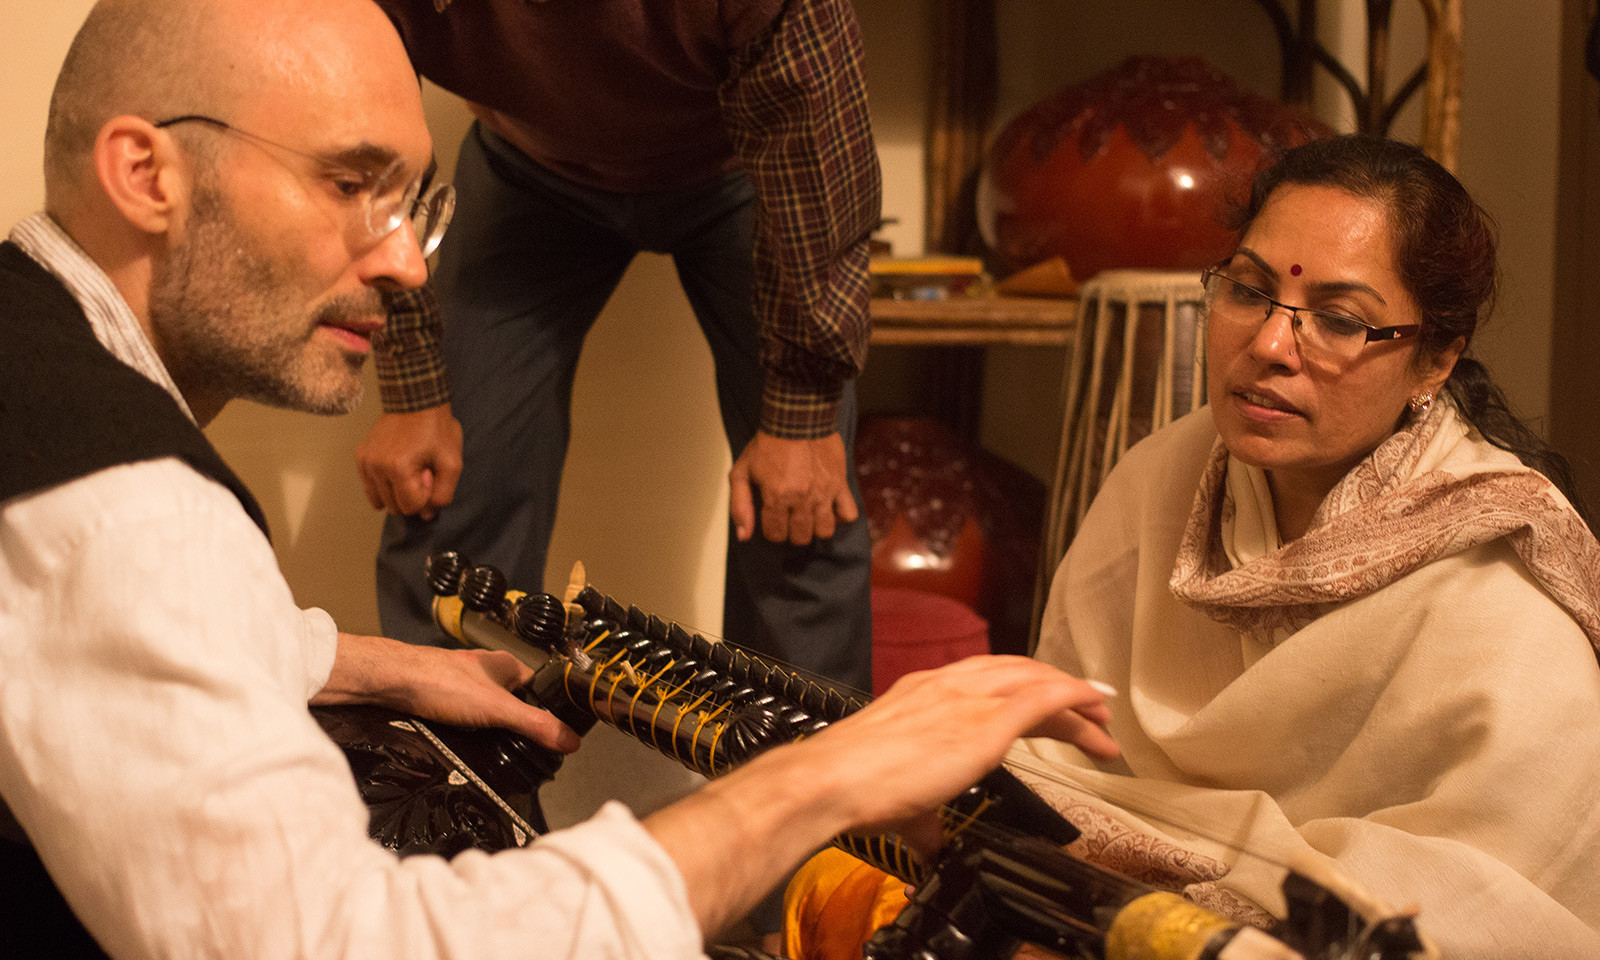 Veena Baithak 'The Sound of Silence' 2016 with Jyoti Hedges